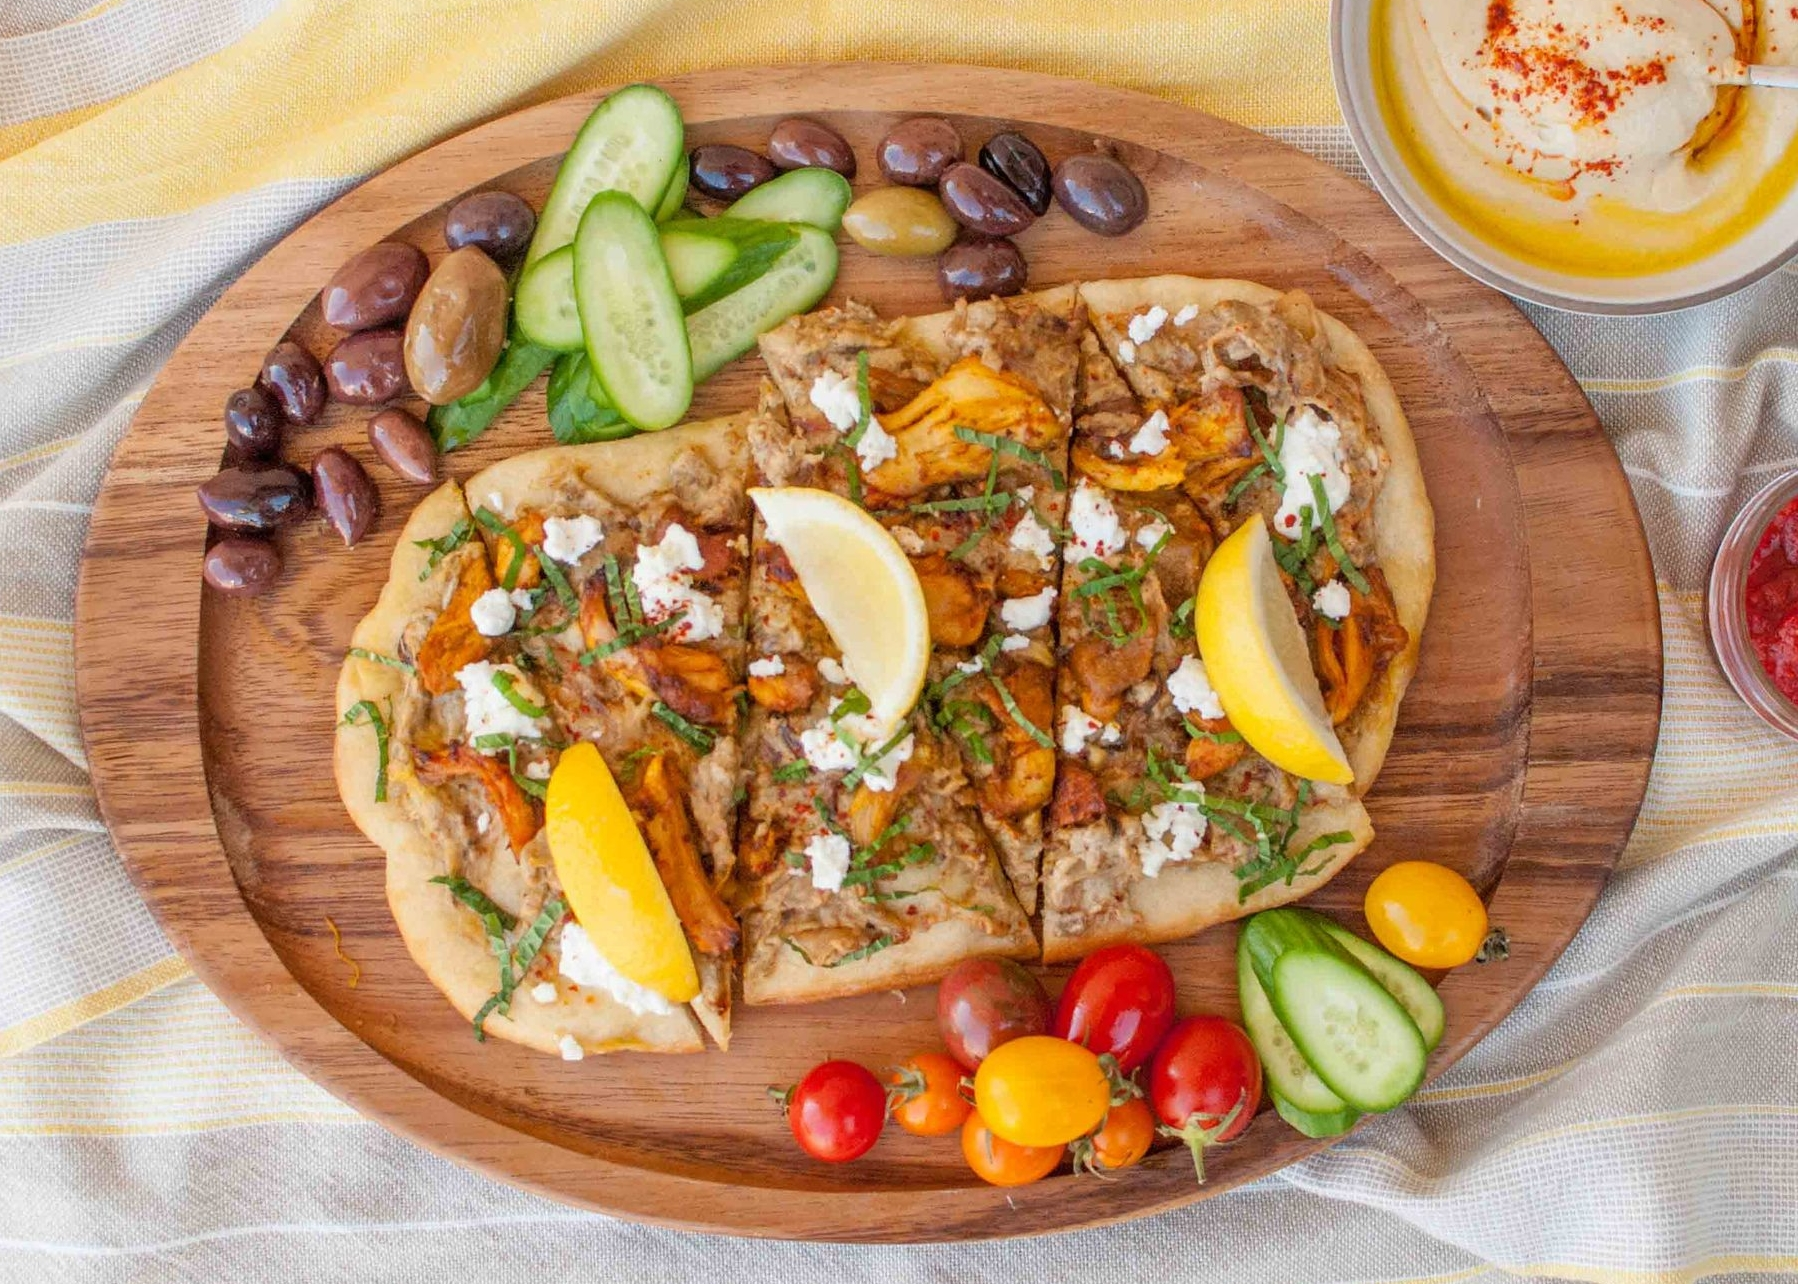 chicken shawarma flatbread with eggplant and caramelized onion dip